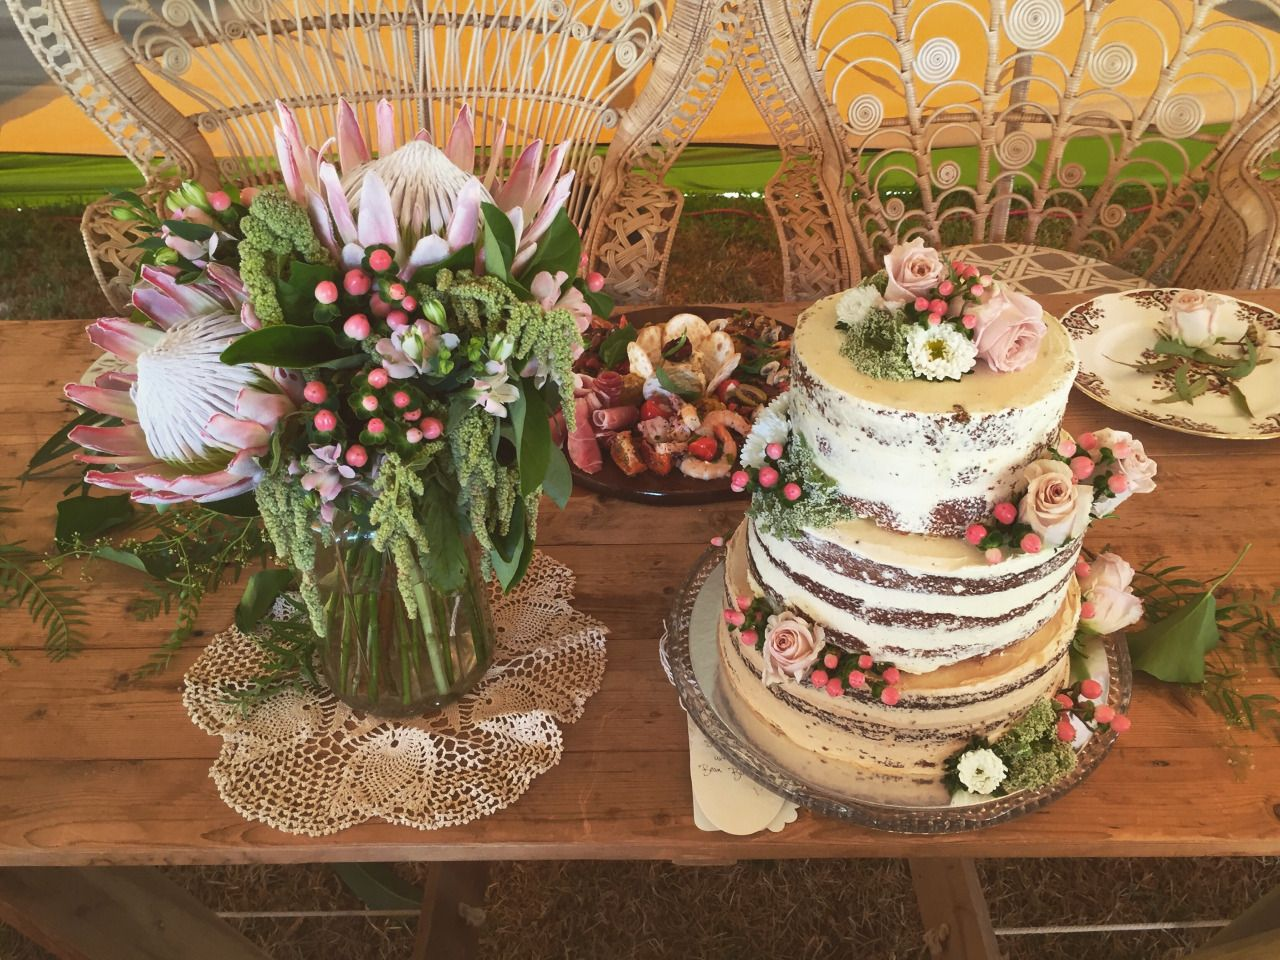 Cake deco and tables arrangement for the bride and groom table. This was by far my favorite arrangement and the cake was super fun to decorate!!